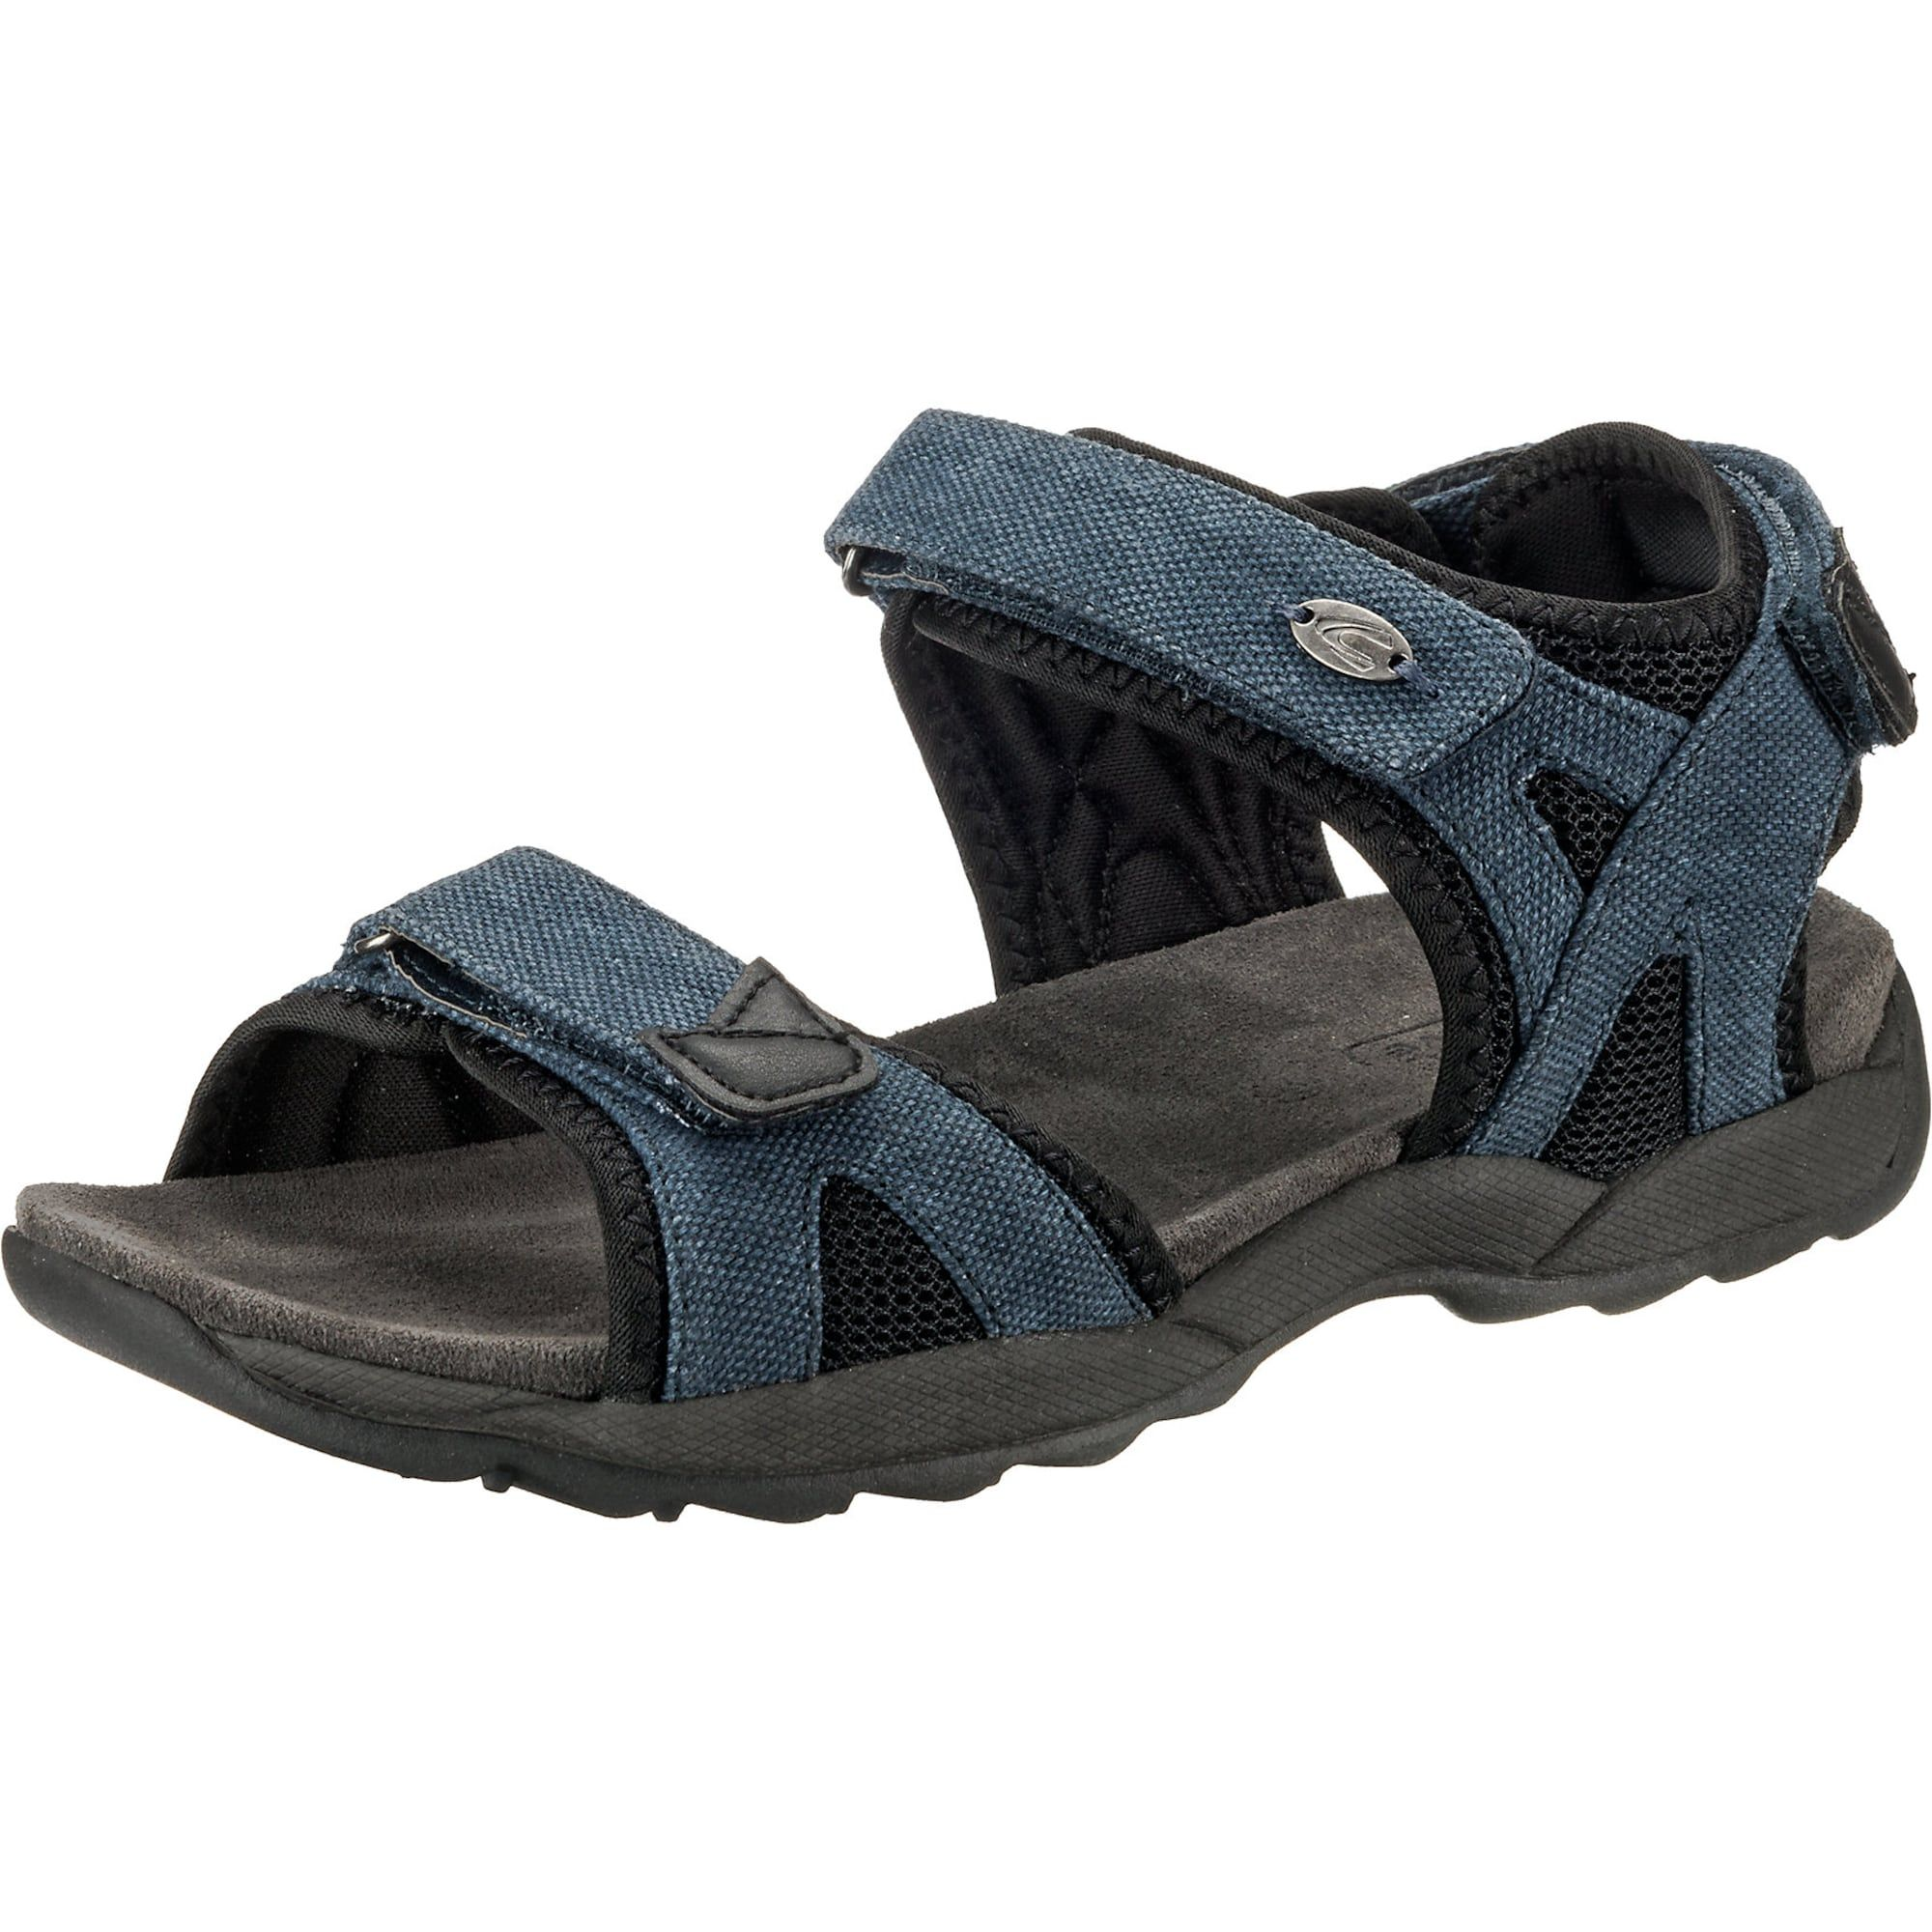 Outdoorsandalen ´Suez 72´